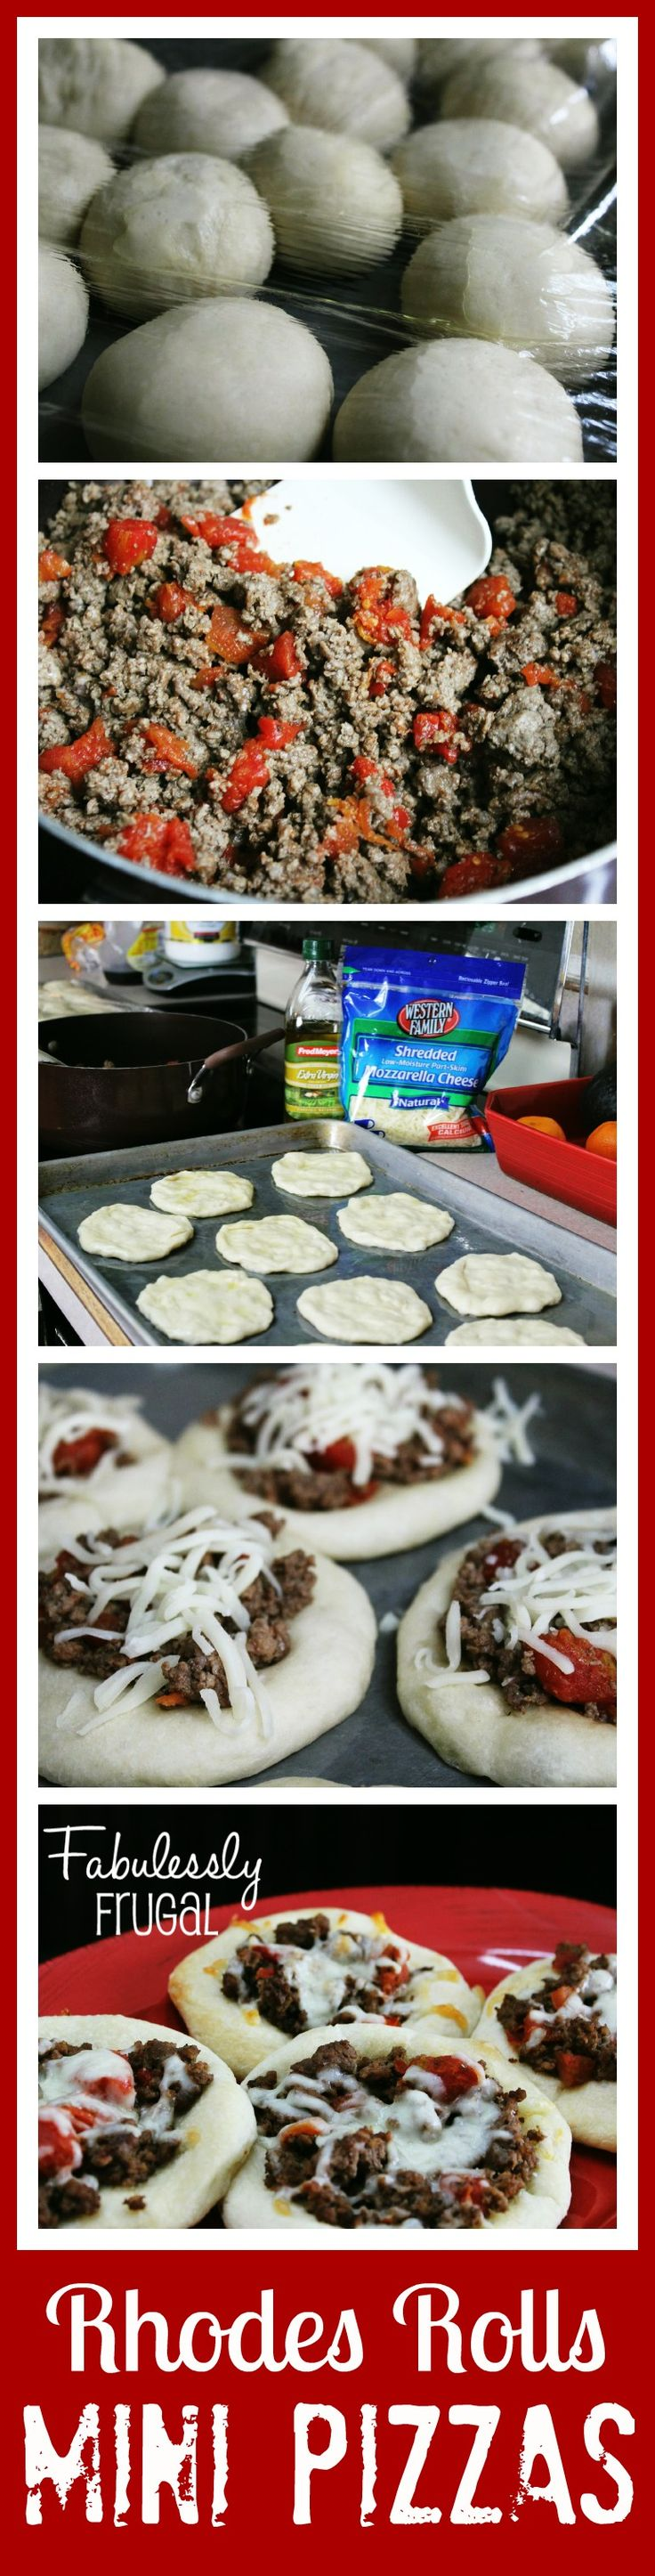 Easy Rhodes Rolls Mini Pizzas.  This is a fun one to prepare with kids!  There are instructions for preparing this as a freezer meal too.